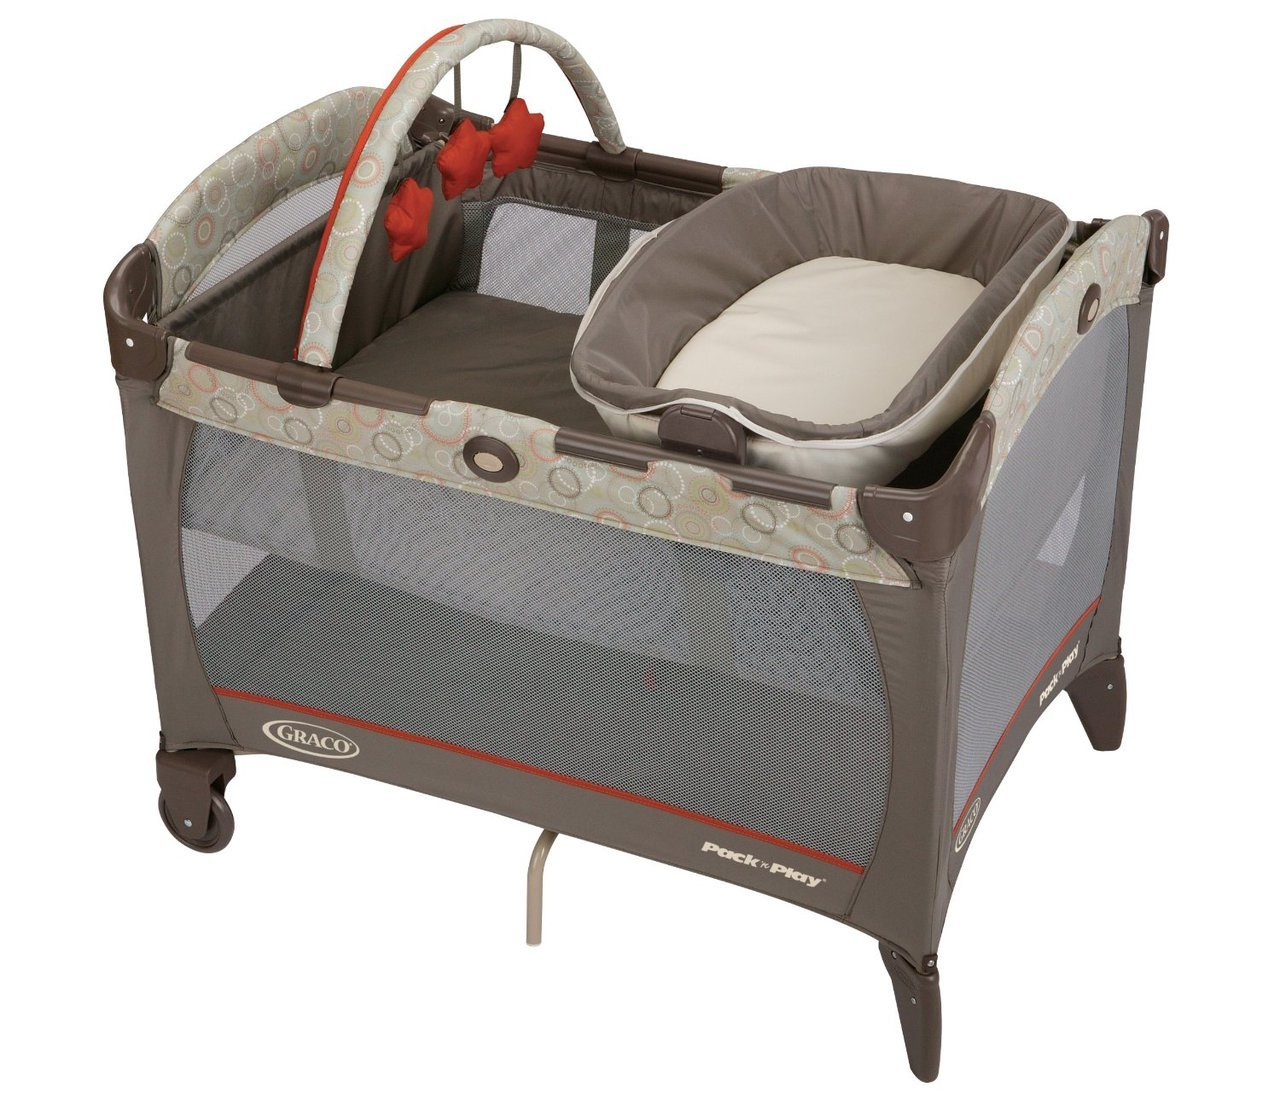 Graco Pack 'n Play Playard with Reversible Napper + Changer